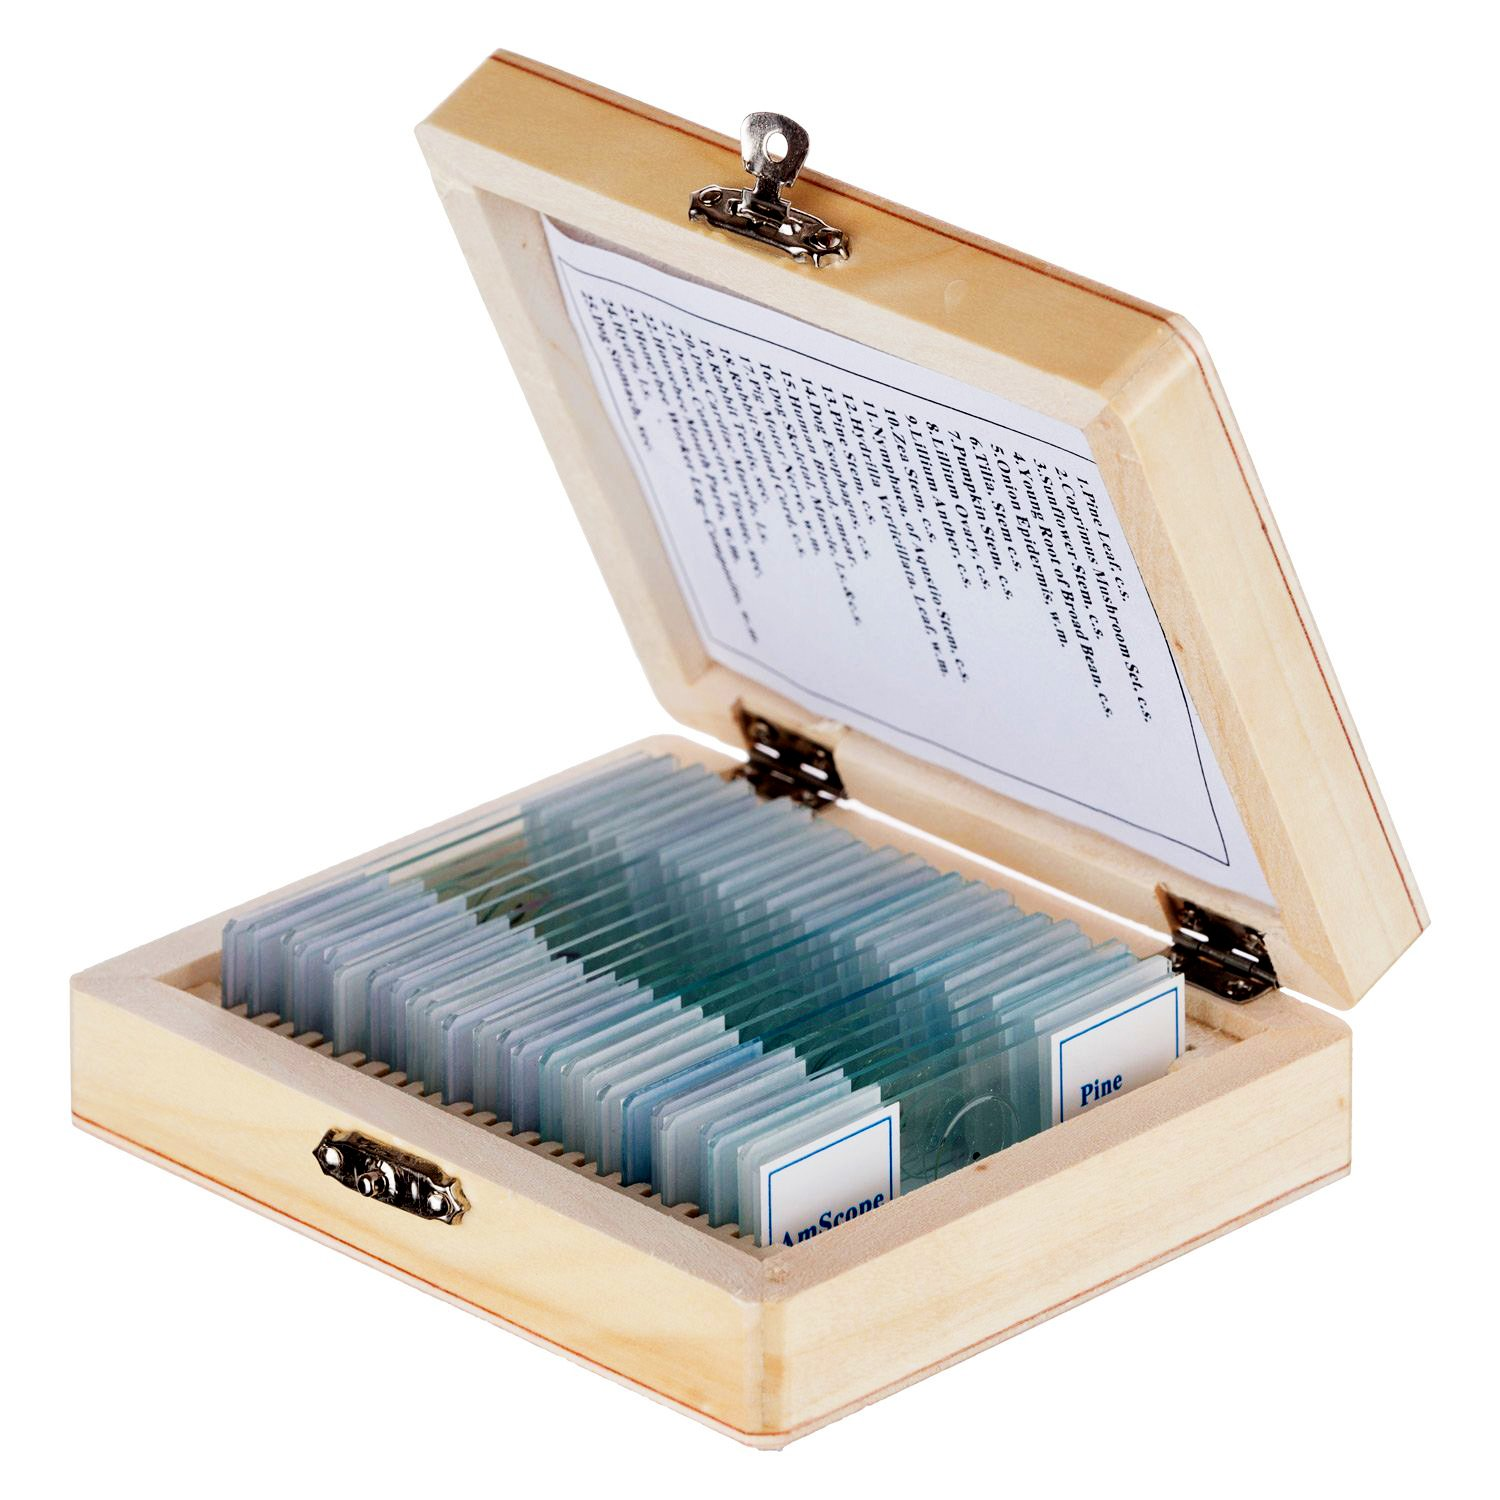 AmScope PS25W Prepared Microscope Slide Set for Basic Biological Science Education, 25 Slides, Includes Fitted Wooden Case by AmScope